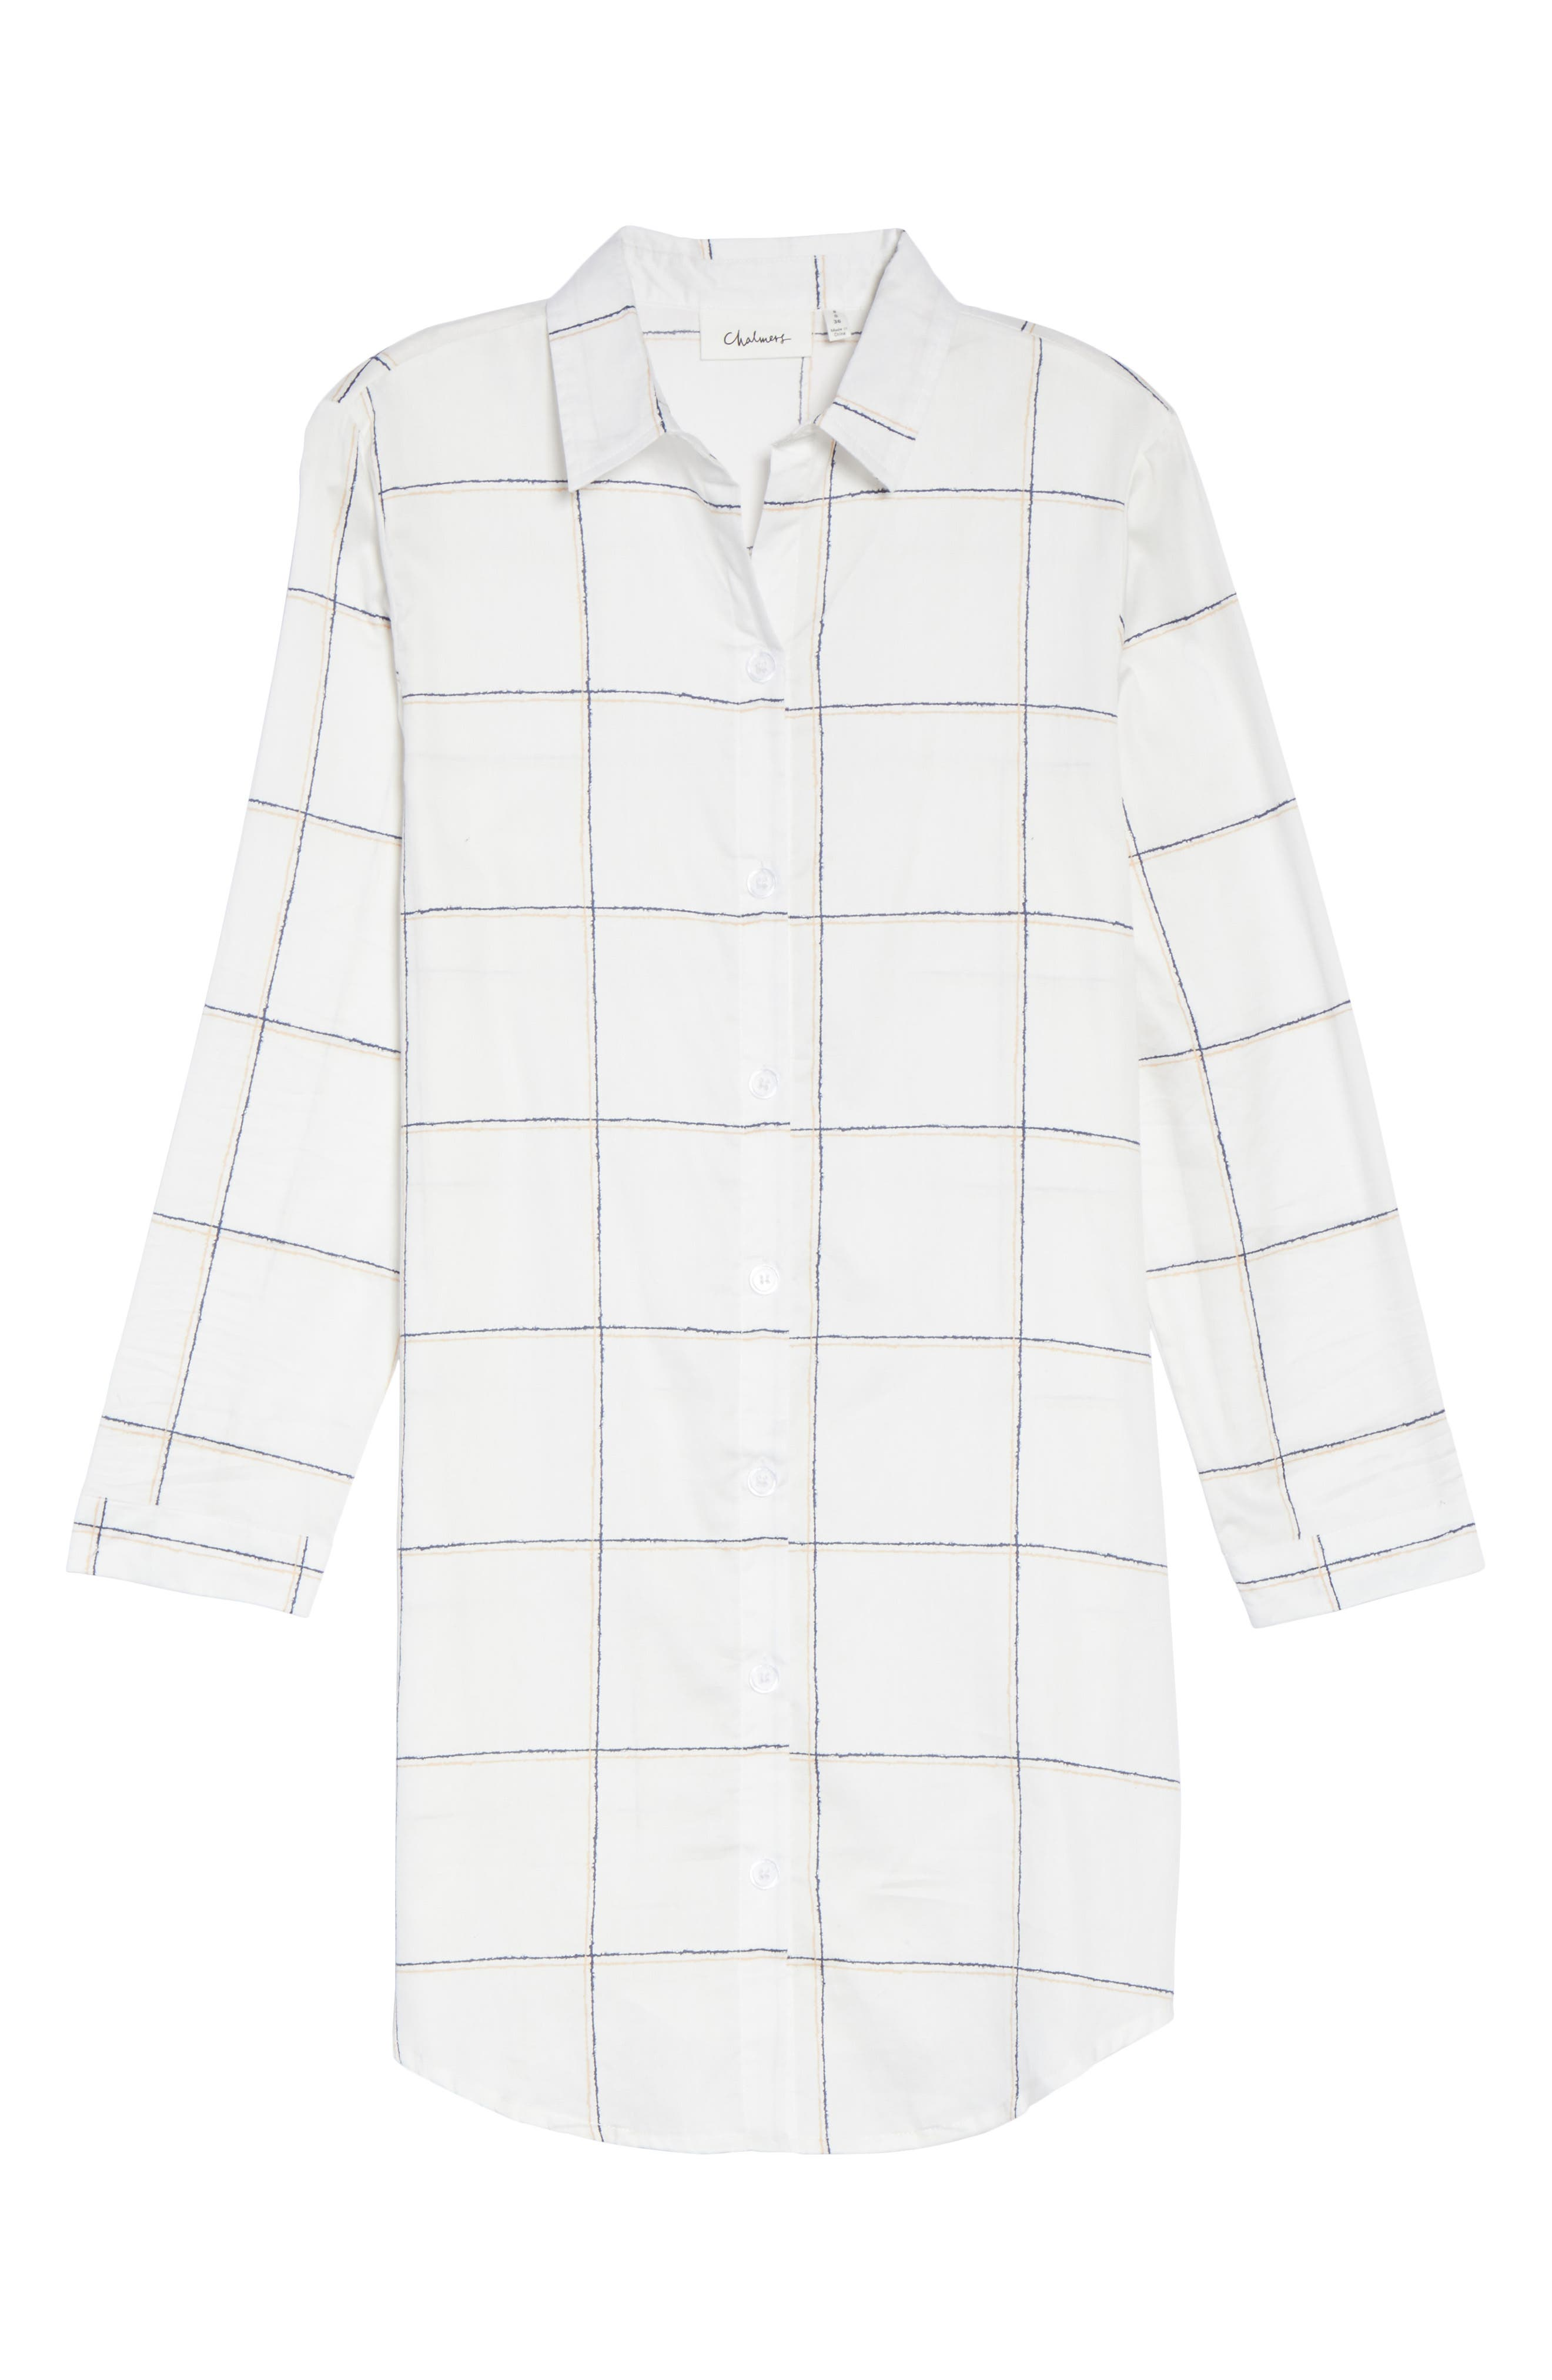 Evey Nightshirt,                             Alternate thumbnail 4, color,                             Coffee Check White